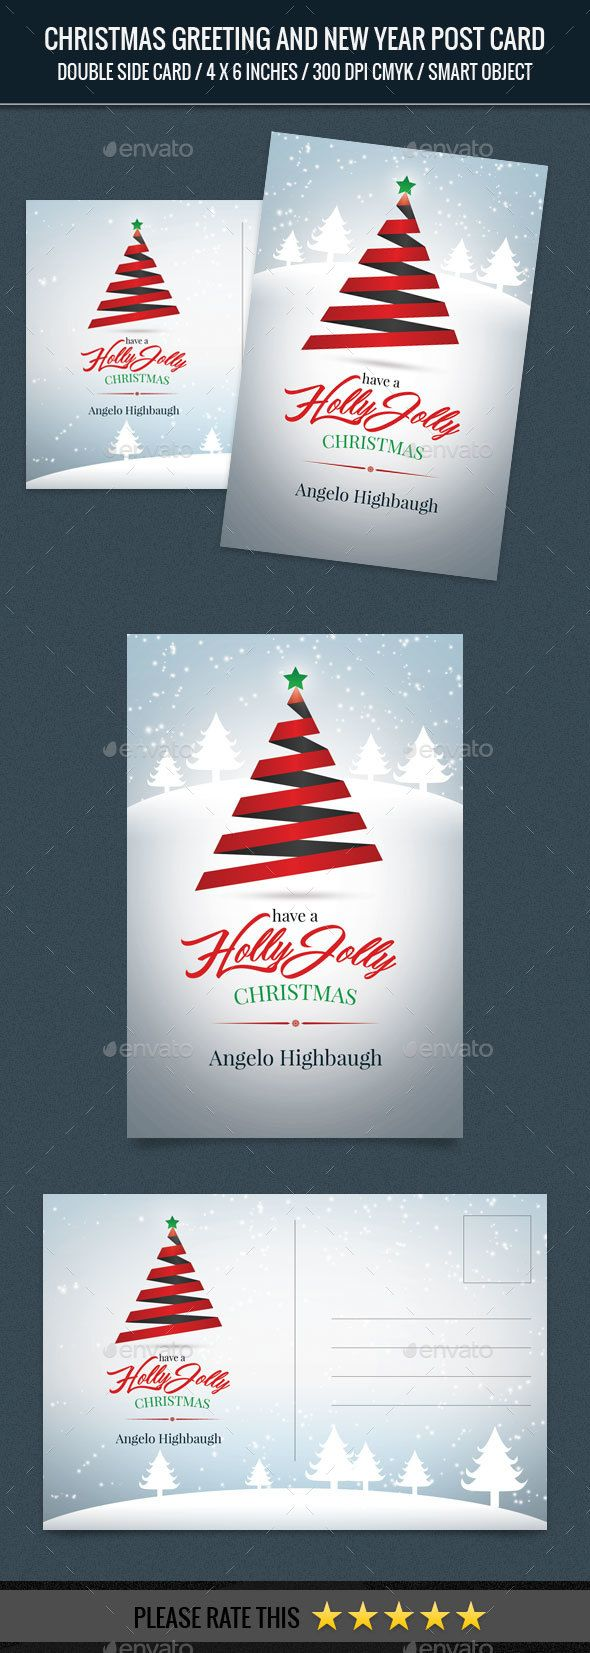 Christmas Greeting And New Year Post Card Template Christmas Greetings New Year Post Postcard